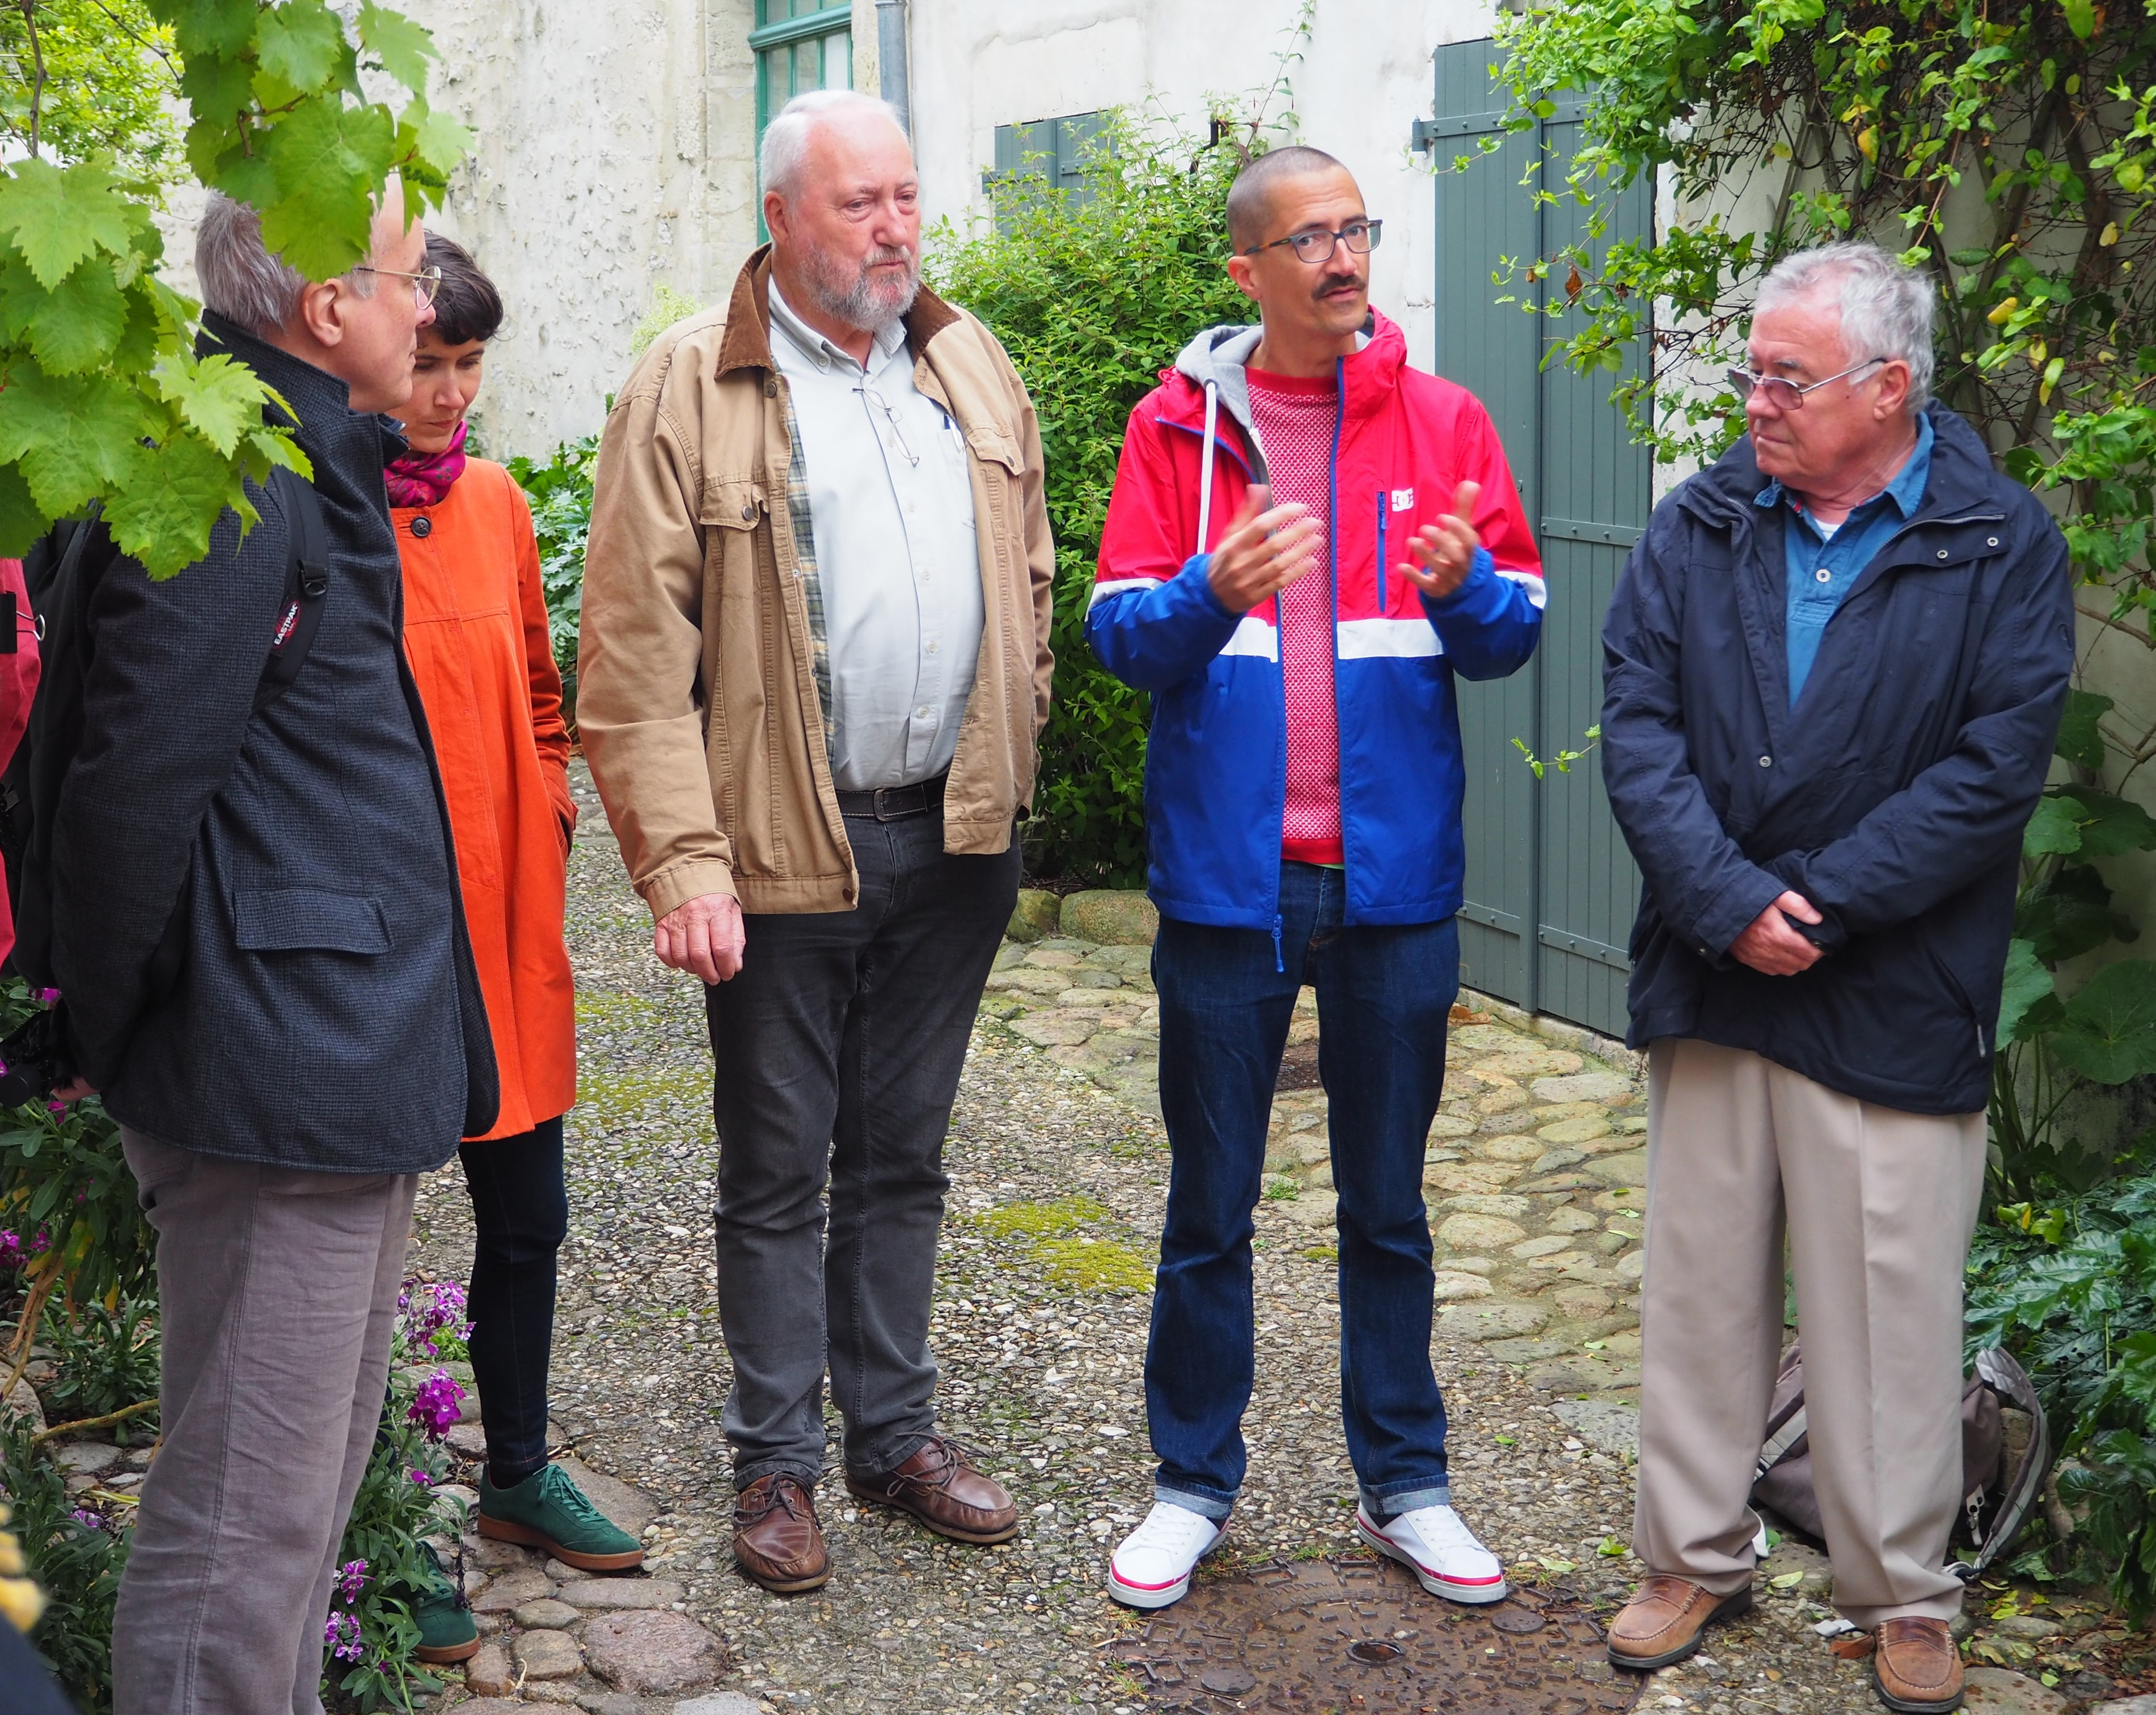 Inauguration Passage Alan Cope Saint-Martin 2018 - 03